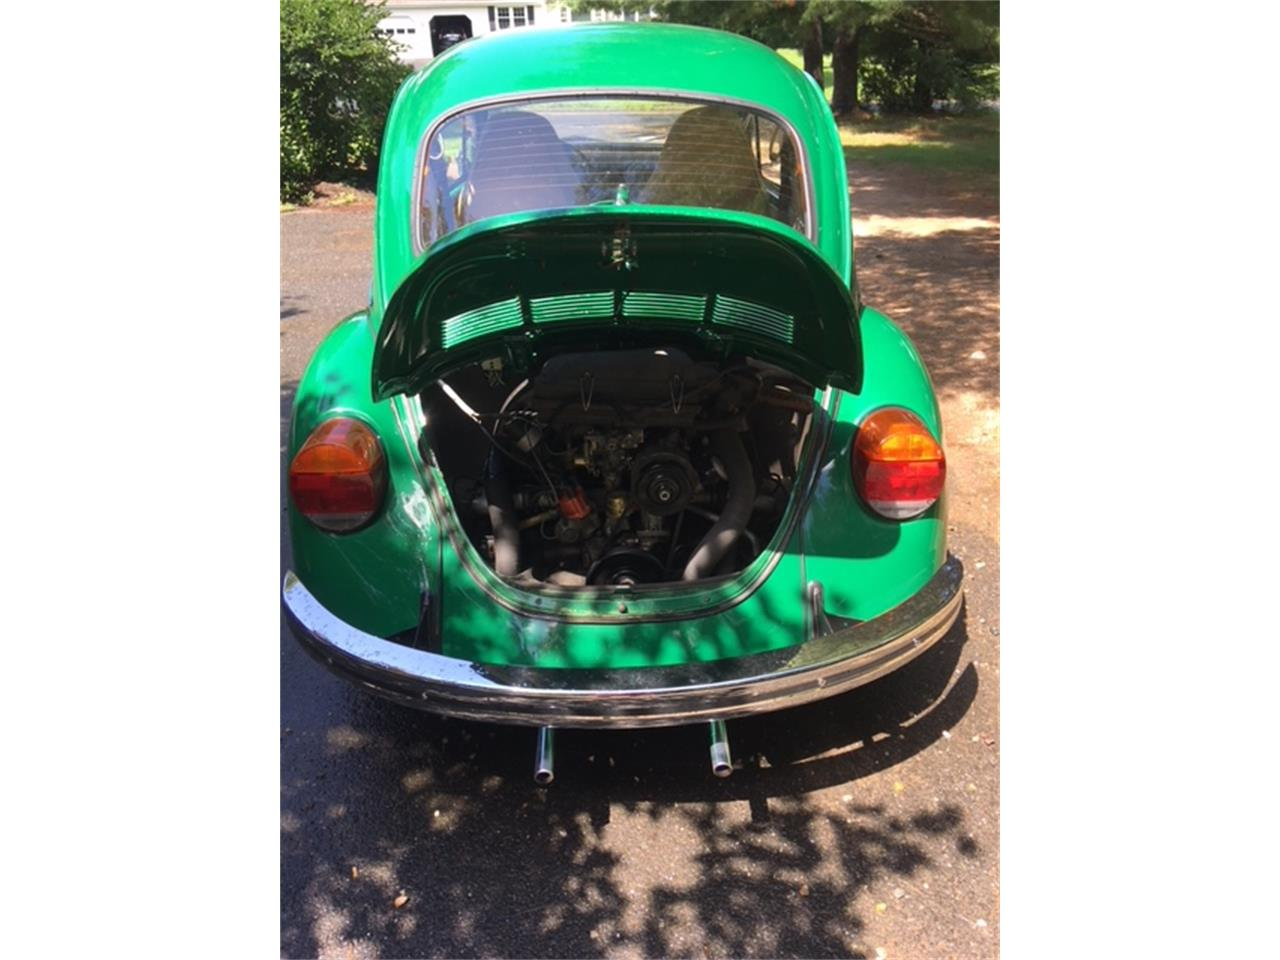 Large Picture of 1973 Super Beetle - $8,500.00 Offered by a Private Seller - P0X2